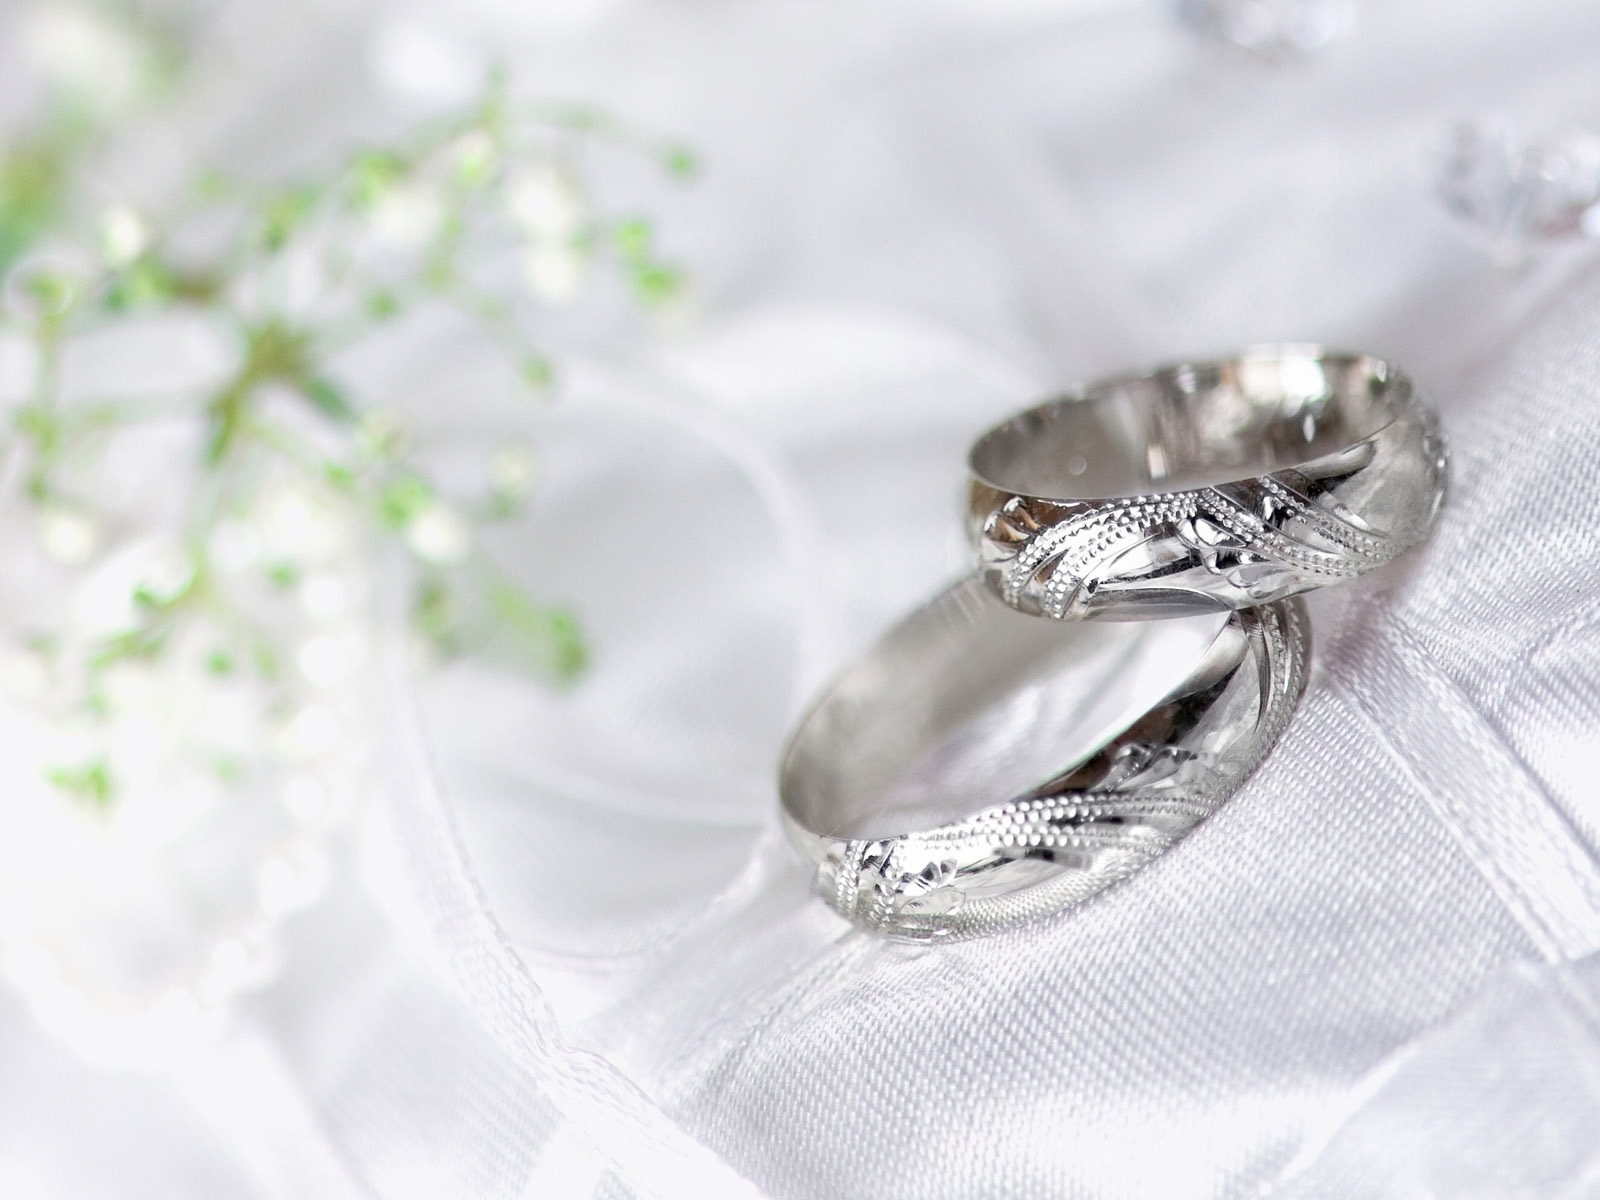 Wedding High Quality Wallpapers